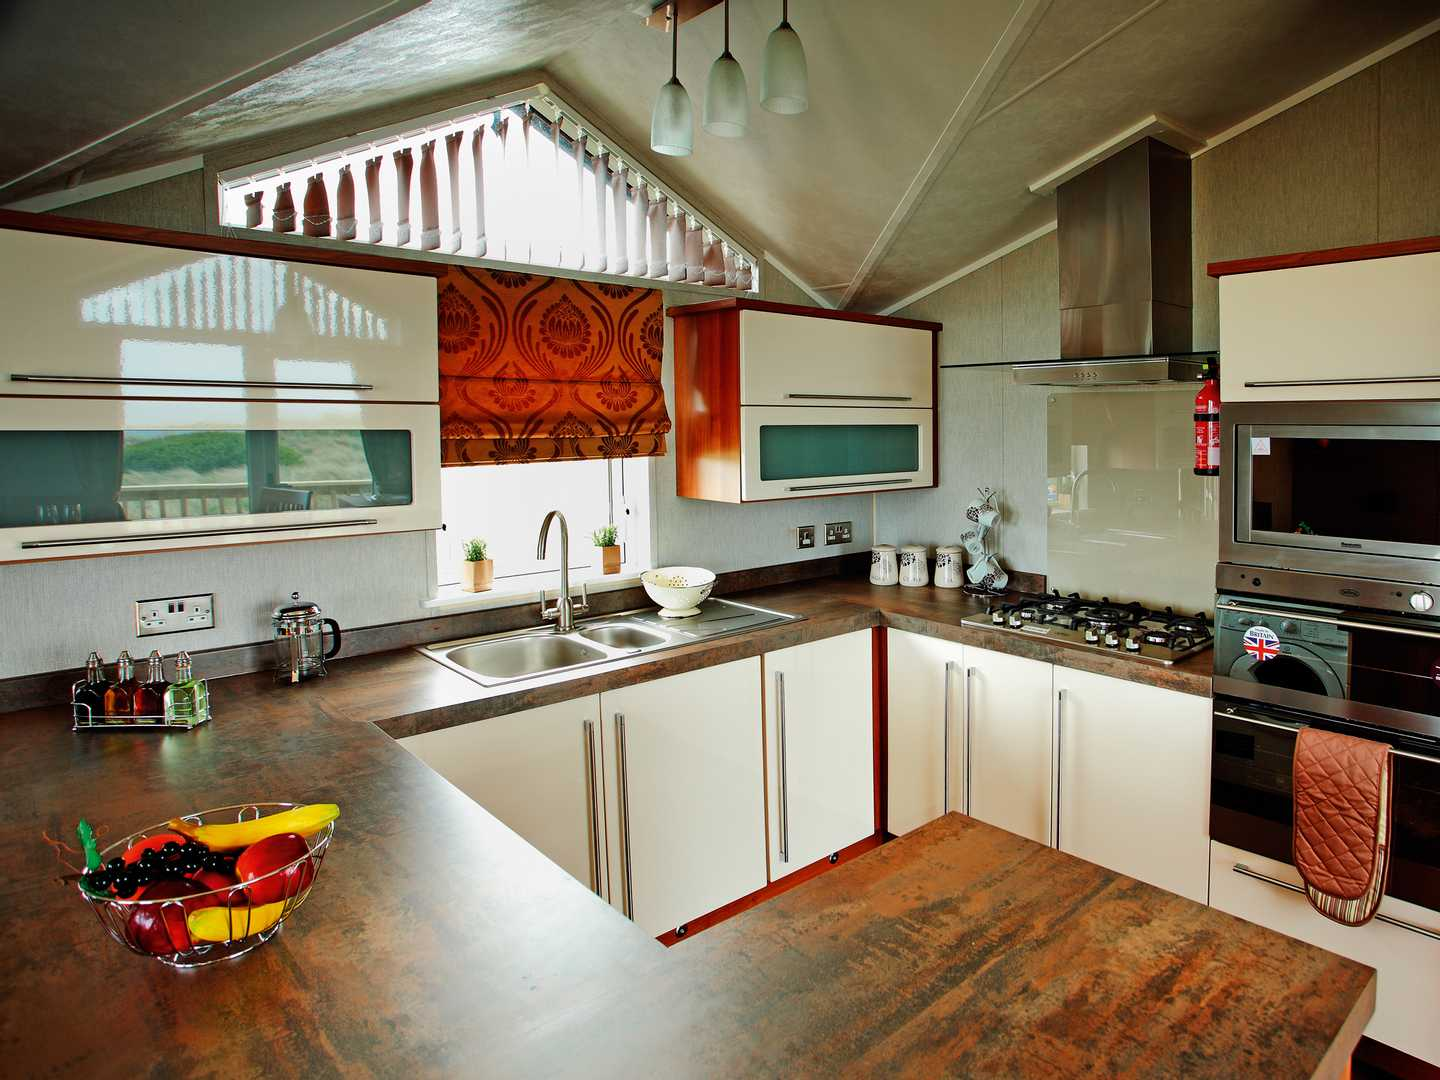 A Luxury Lodge kitchen with oven, sink, gas hobs, storage cupboards